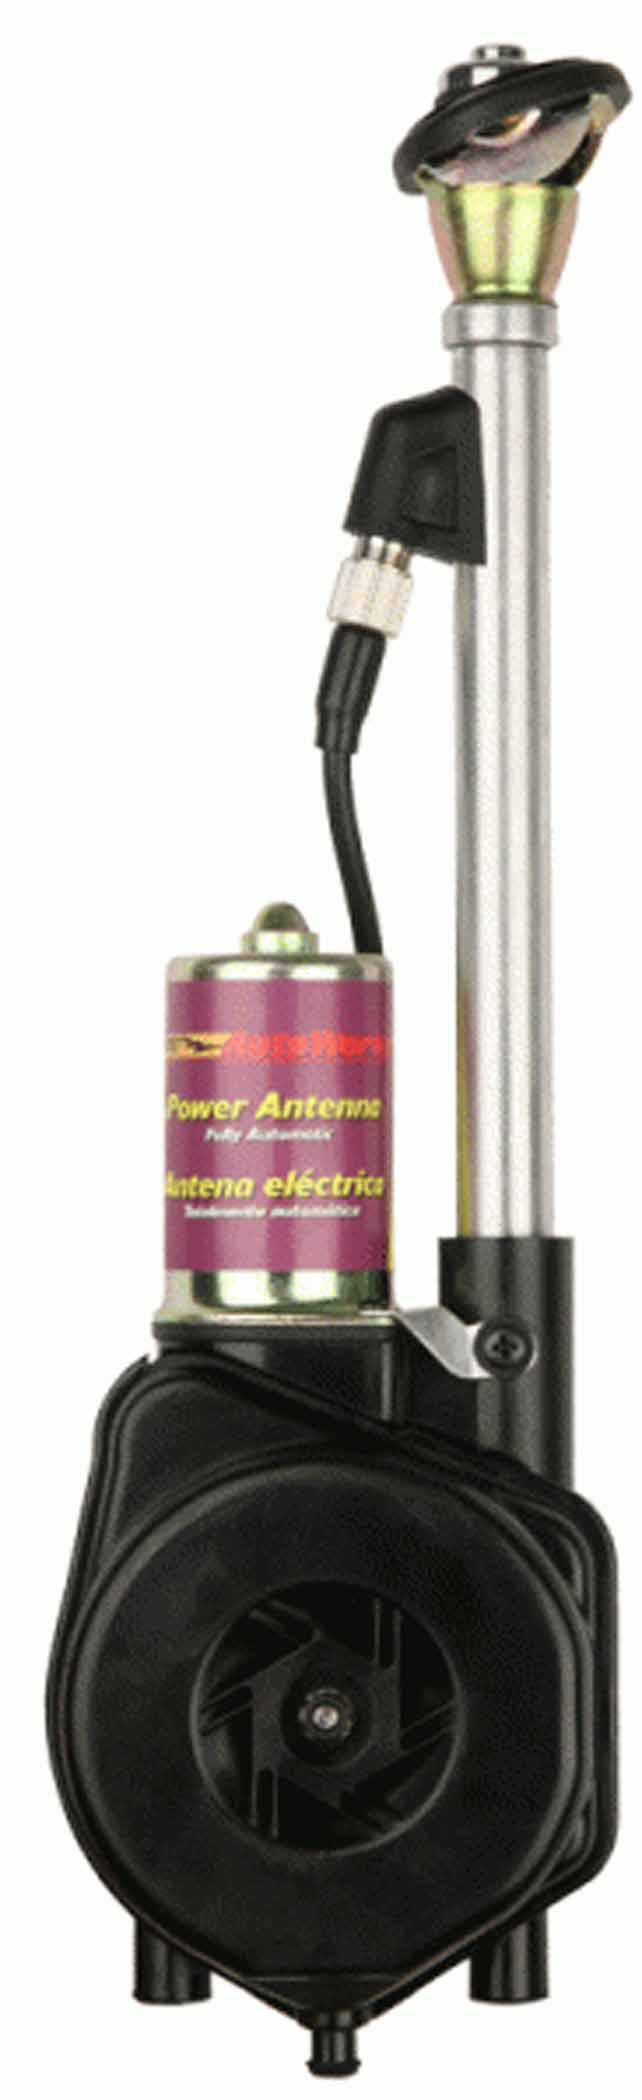 "44PW22 - 31"" Metra 5 Section Automatic AM/FM Power Antenna"